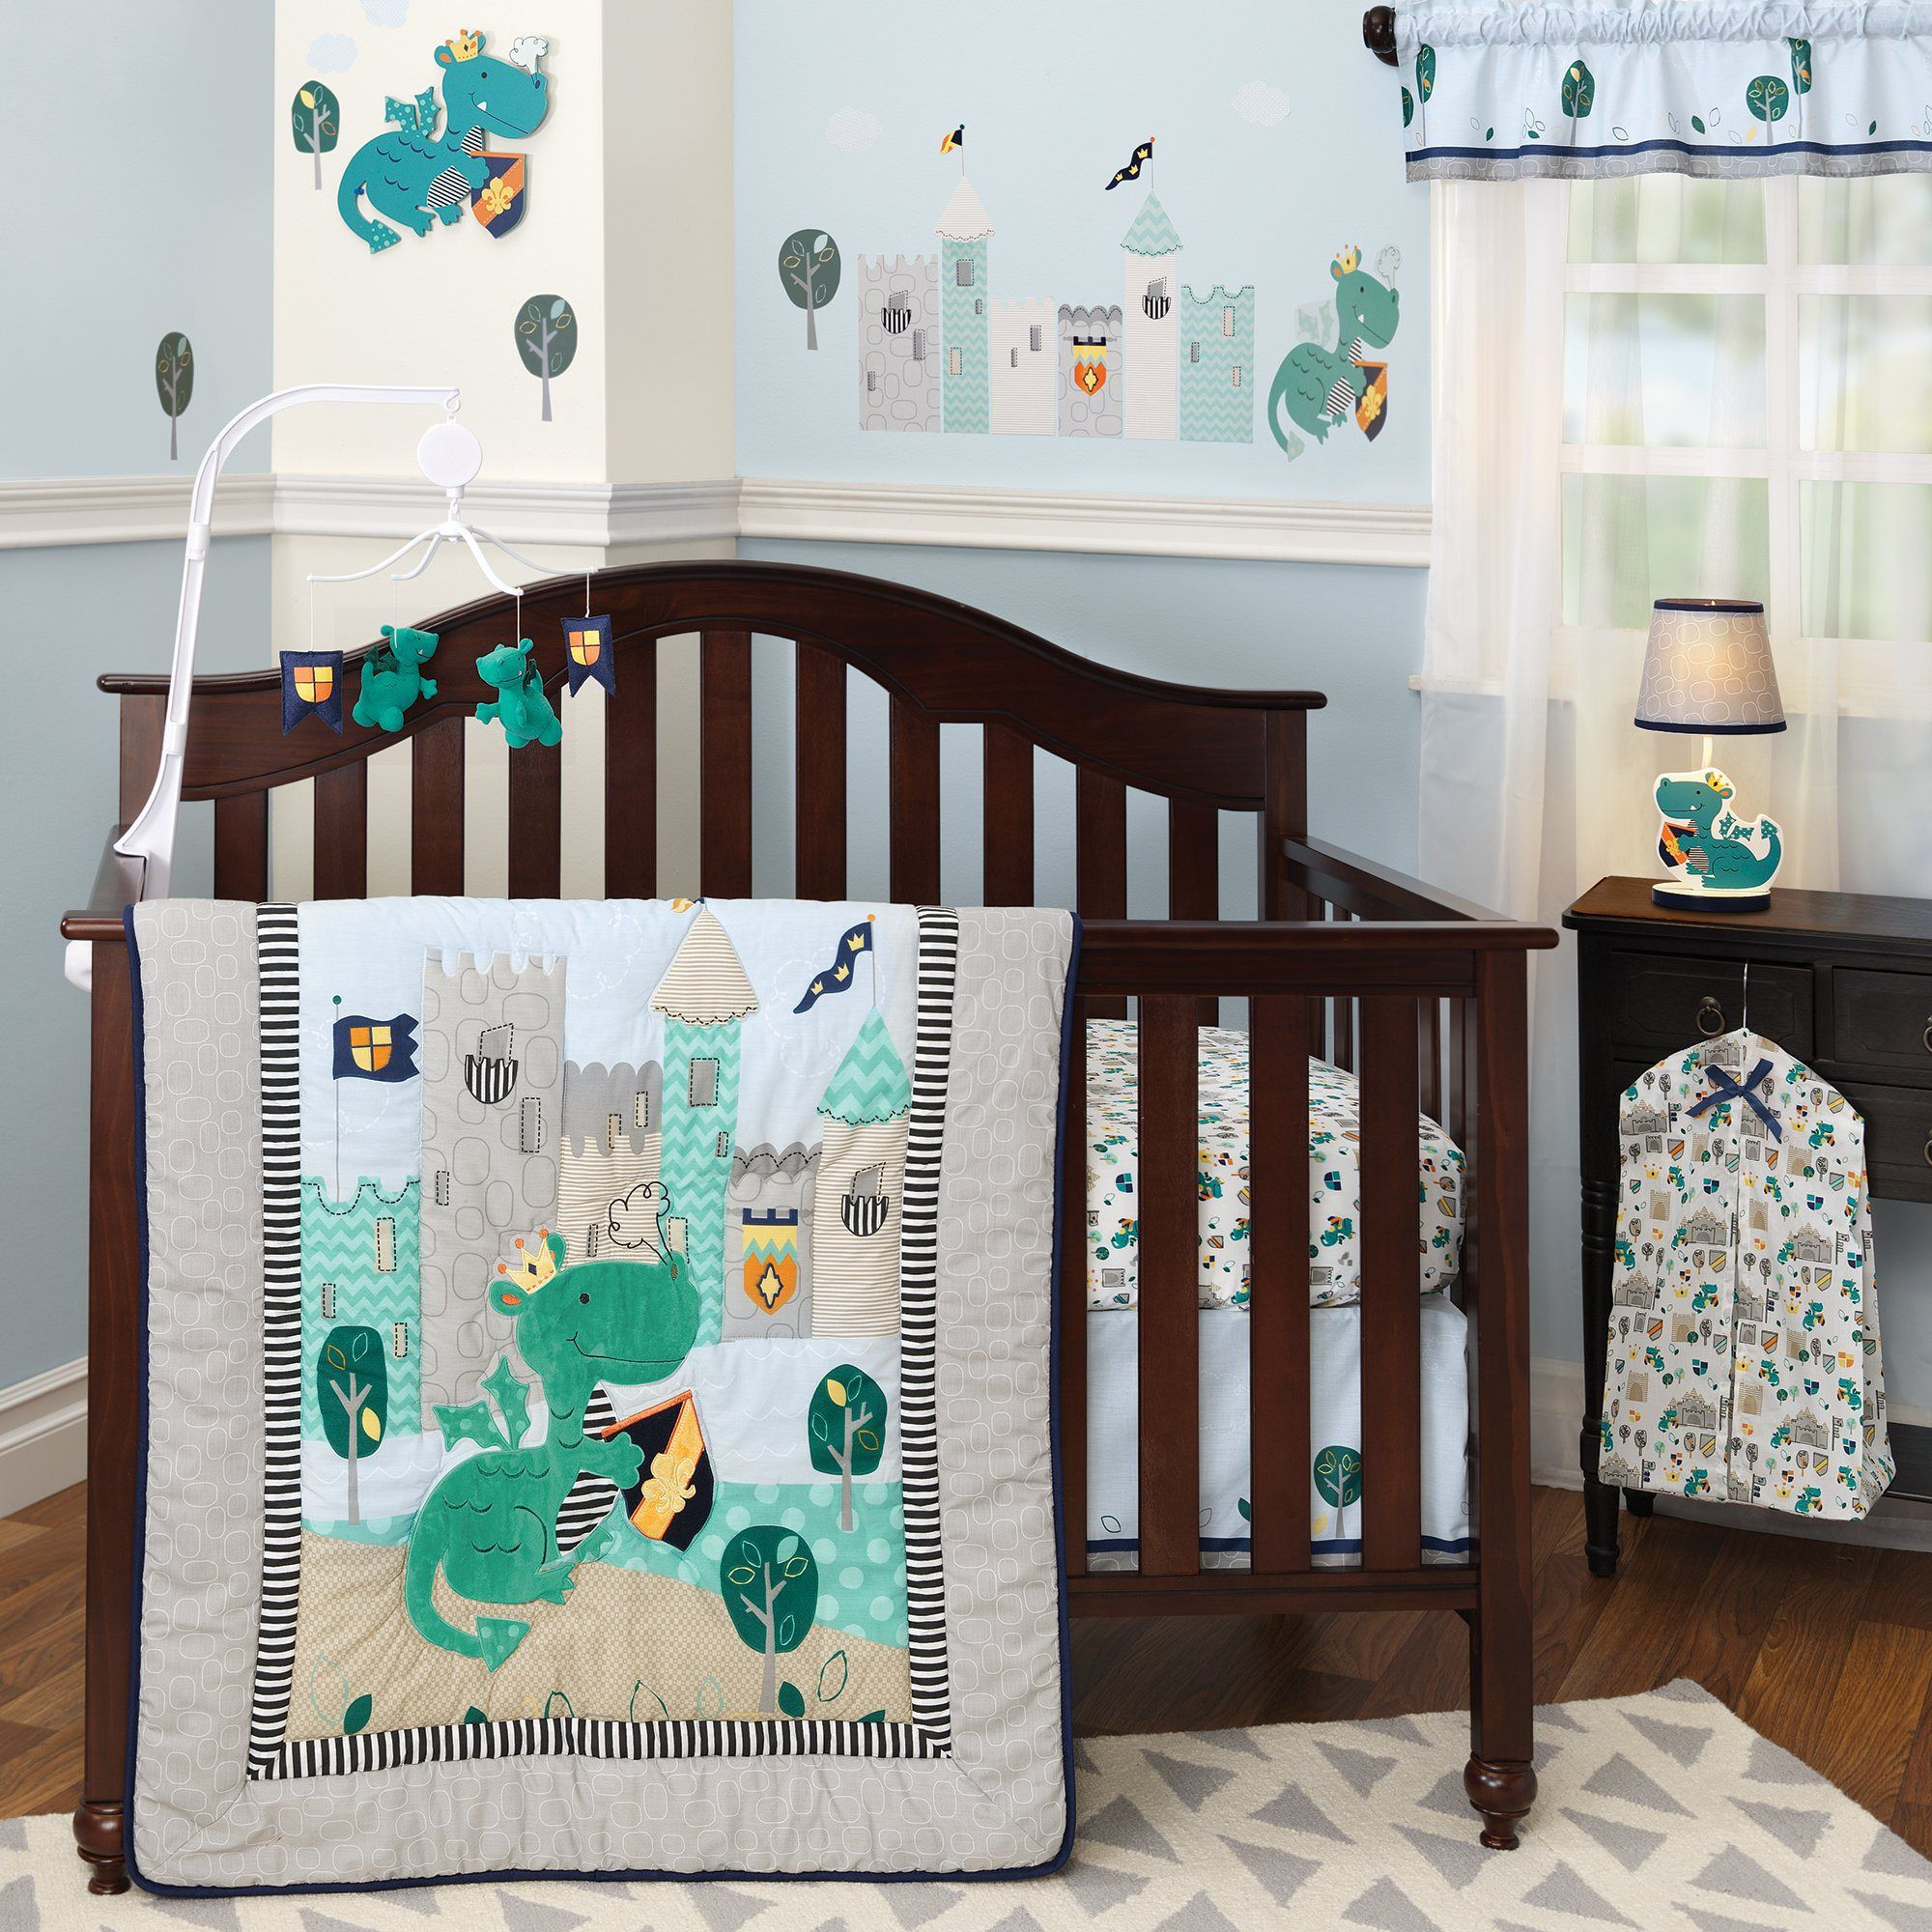 Dinosaur Nursery For Baby Boy Baby Boy Crib Bedding Crib Bedding Boy Boys Crib Bedding Sets